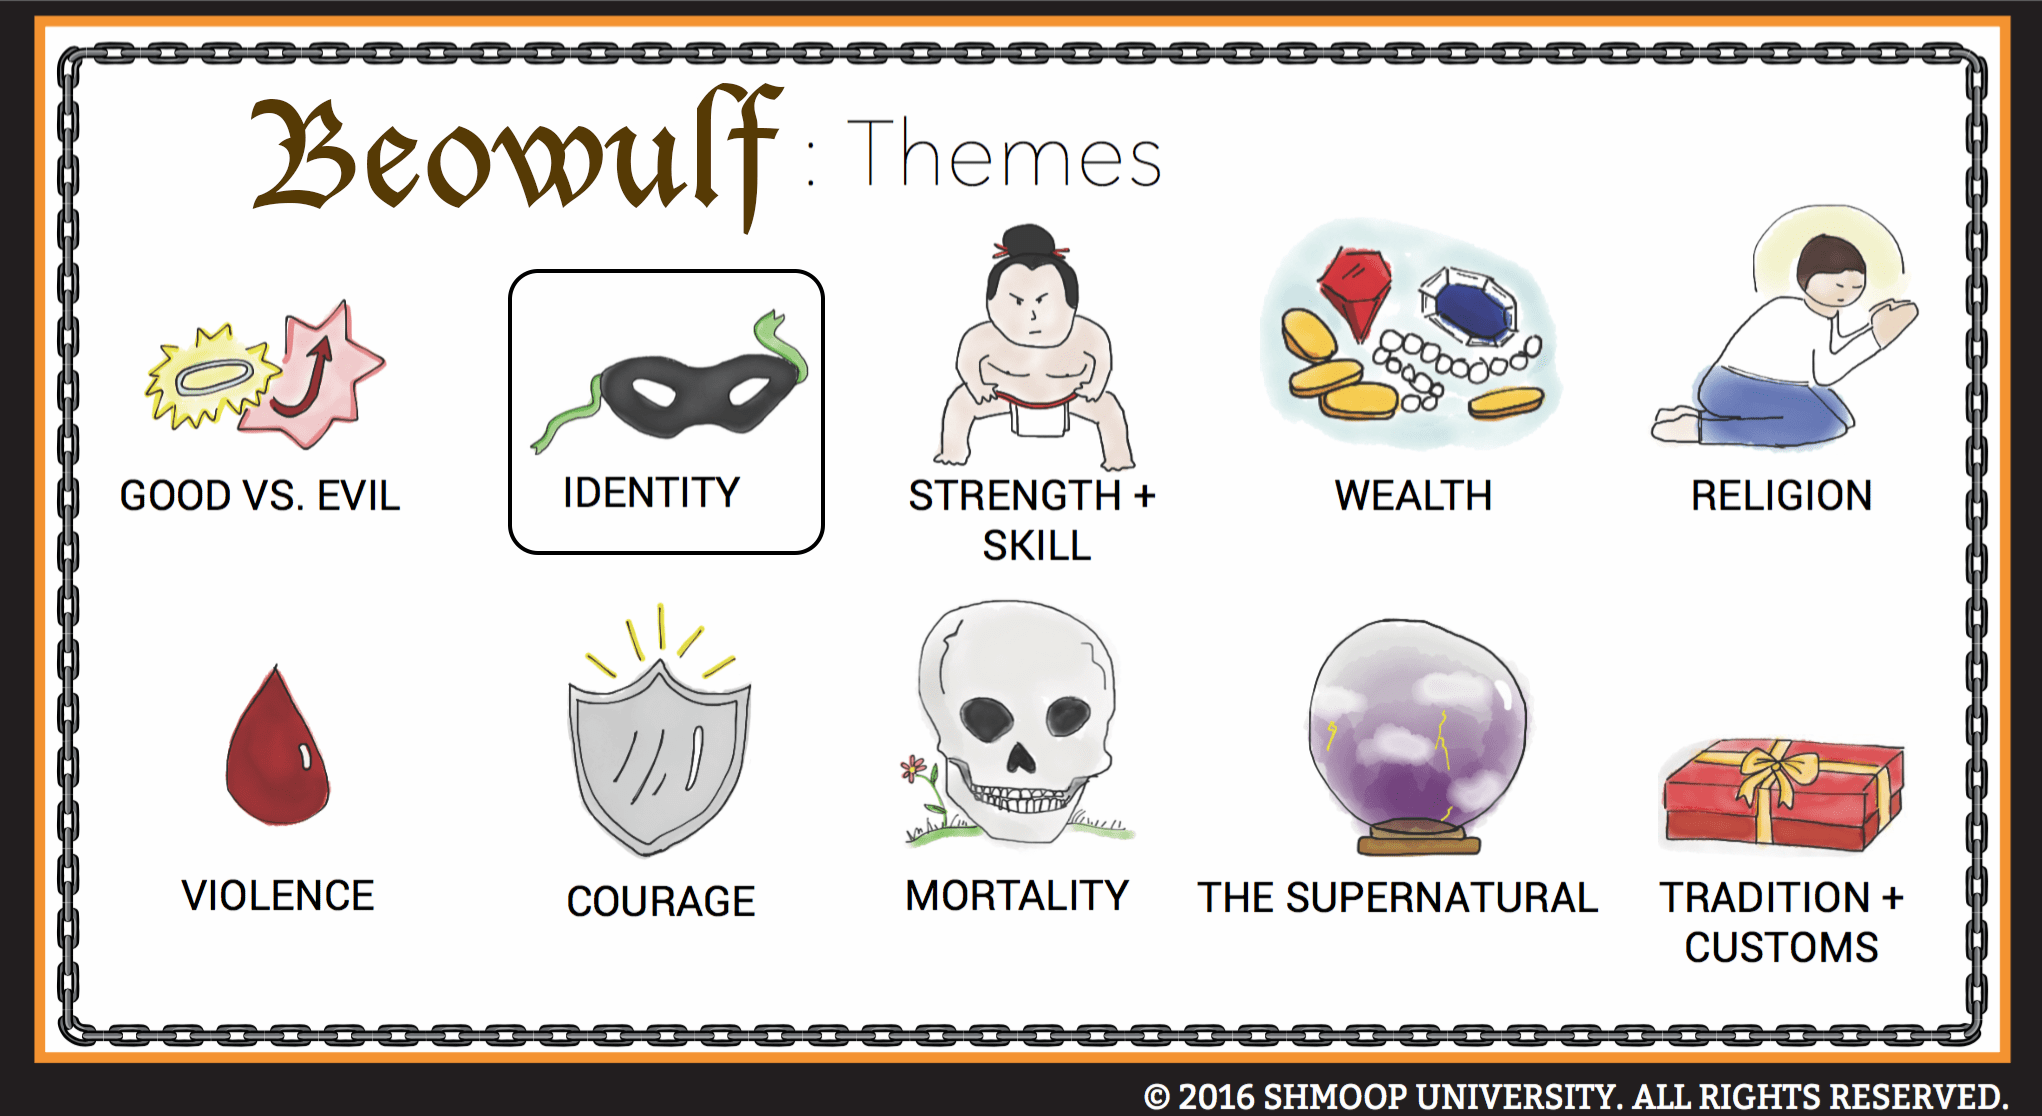 Beowulf Themes